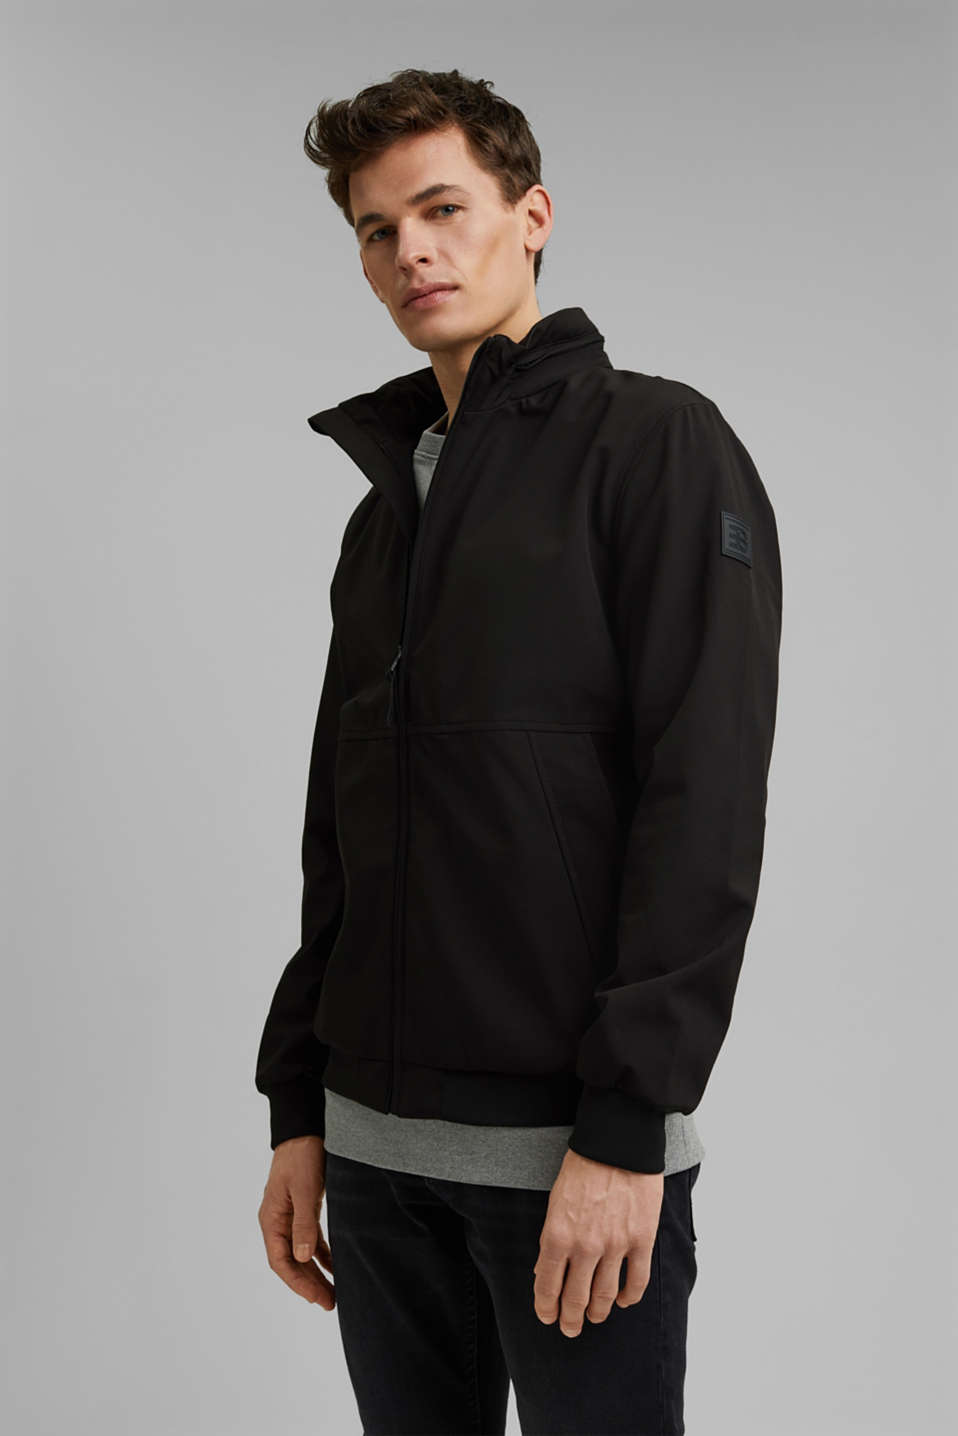 Esprit - Lightweight jackets